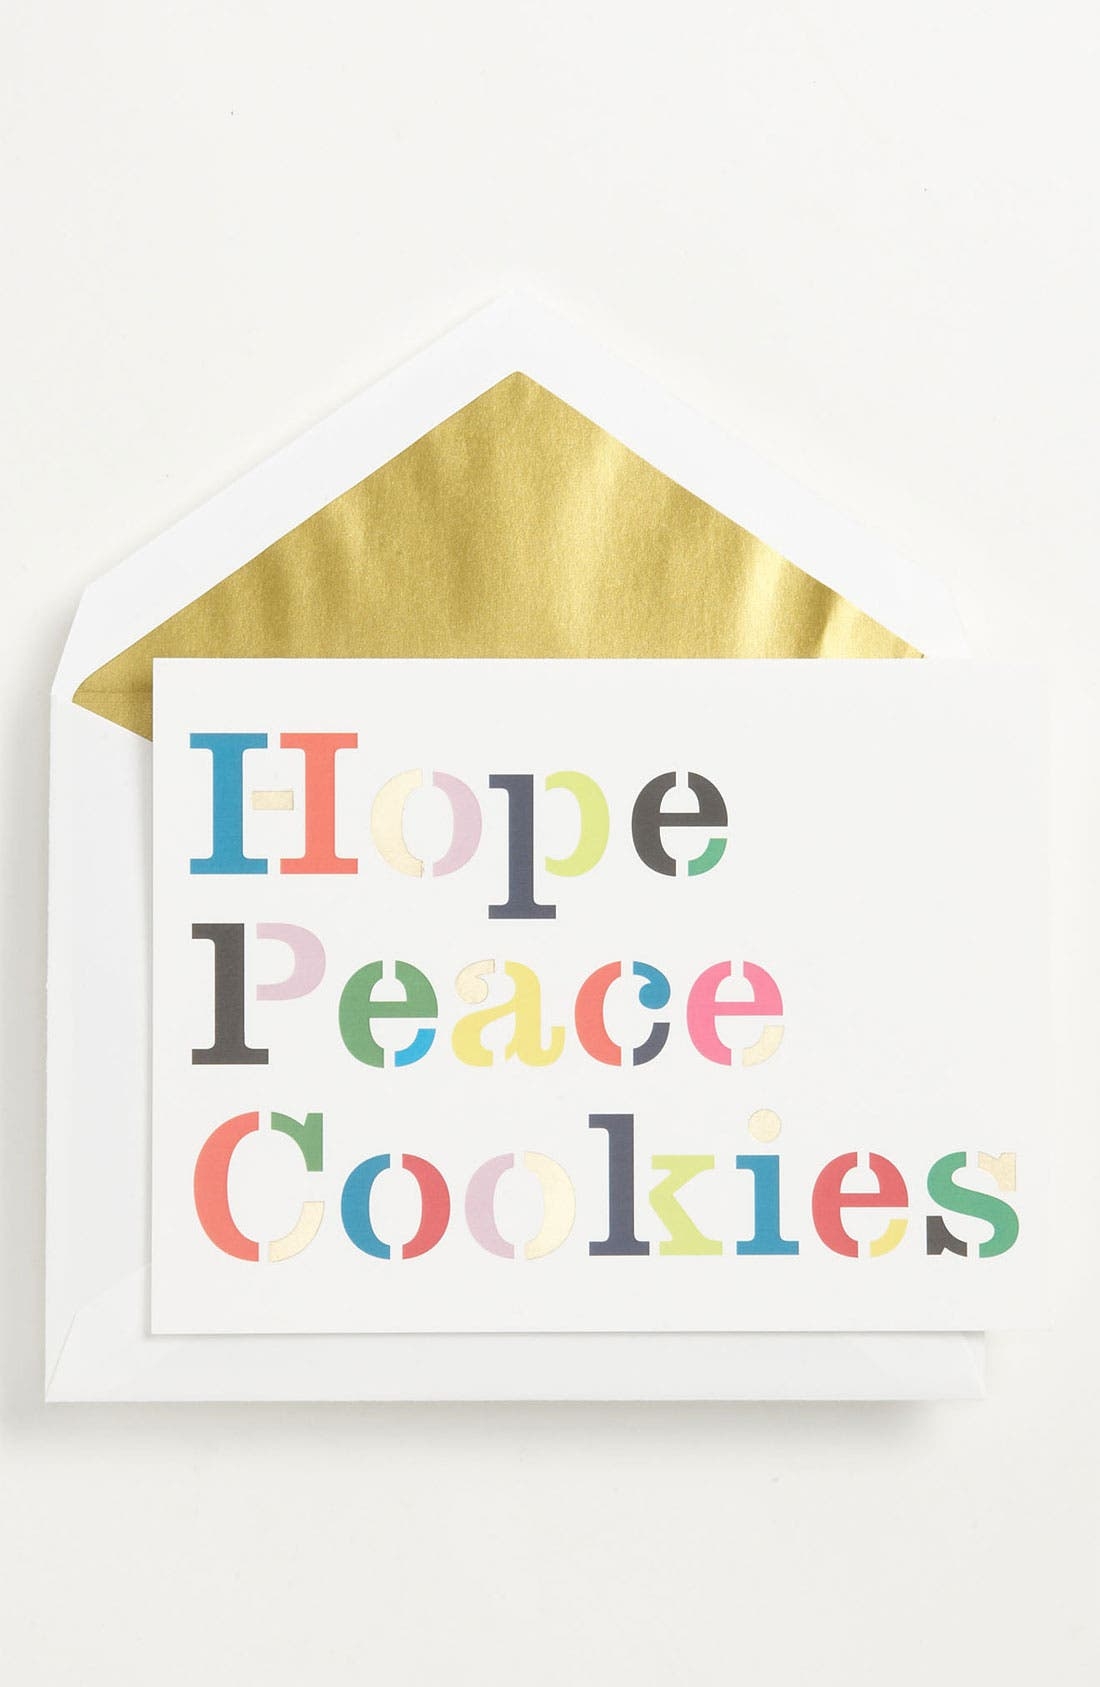 Alternate Image 1 Selected - kate spade new york 'hope peace cookies' foldover note cards (10-Pack)